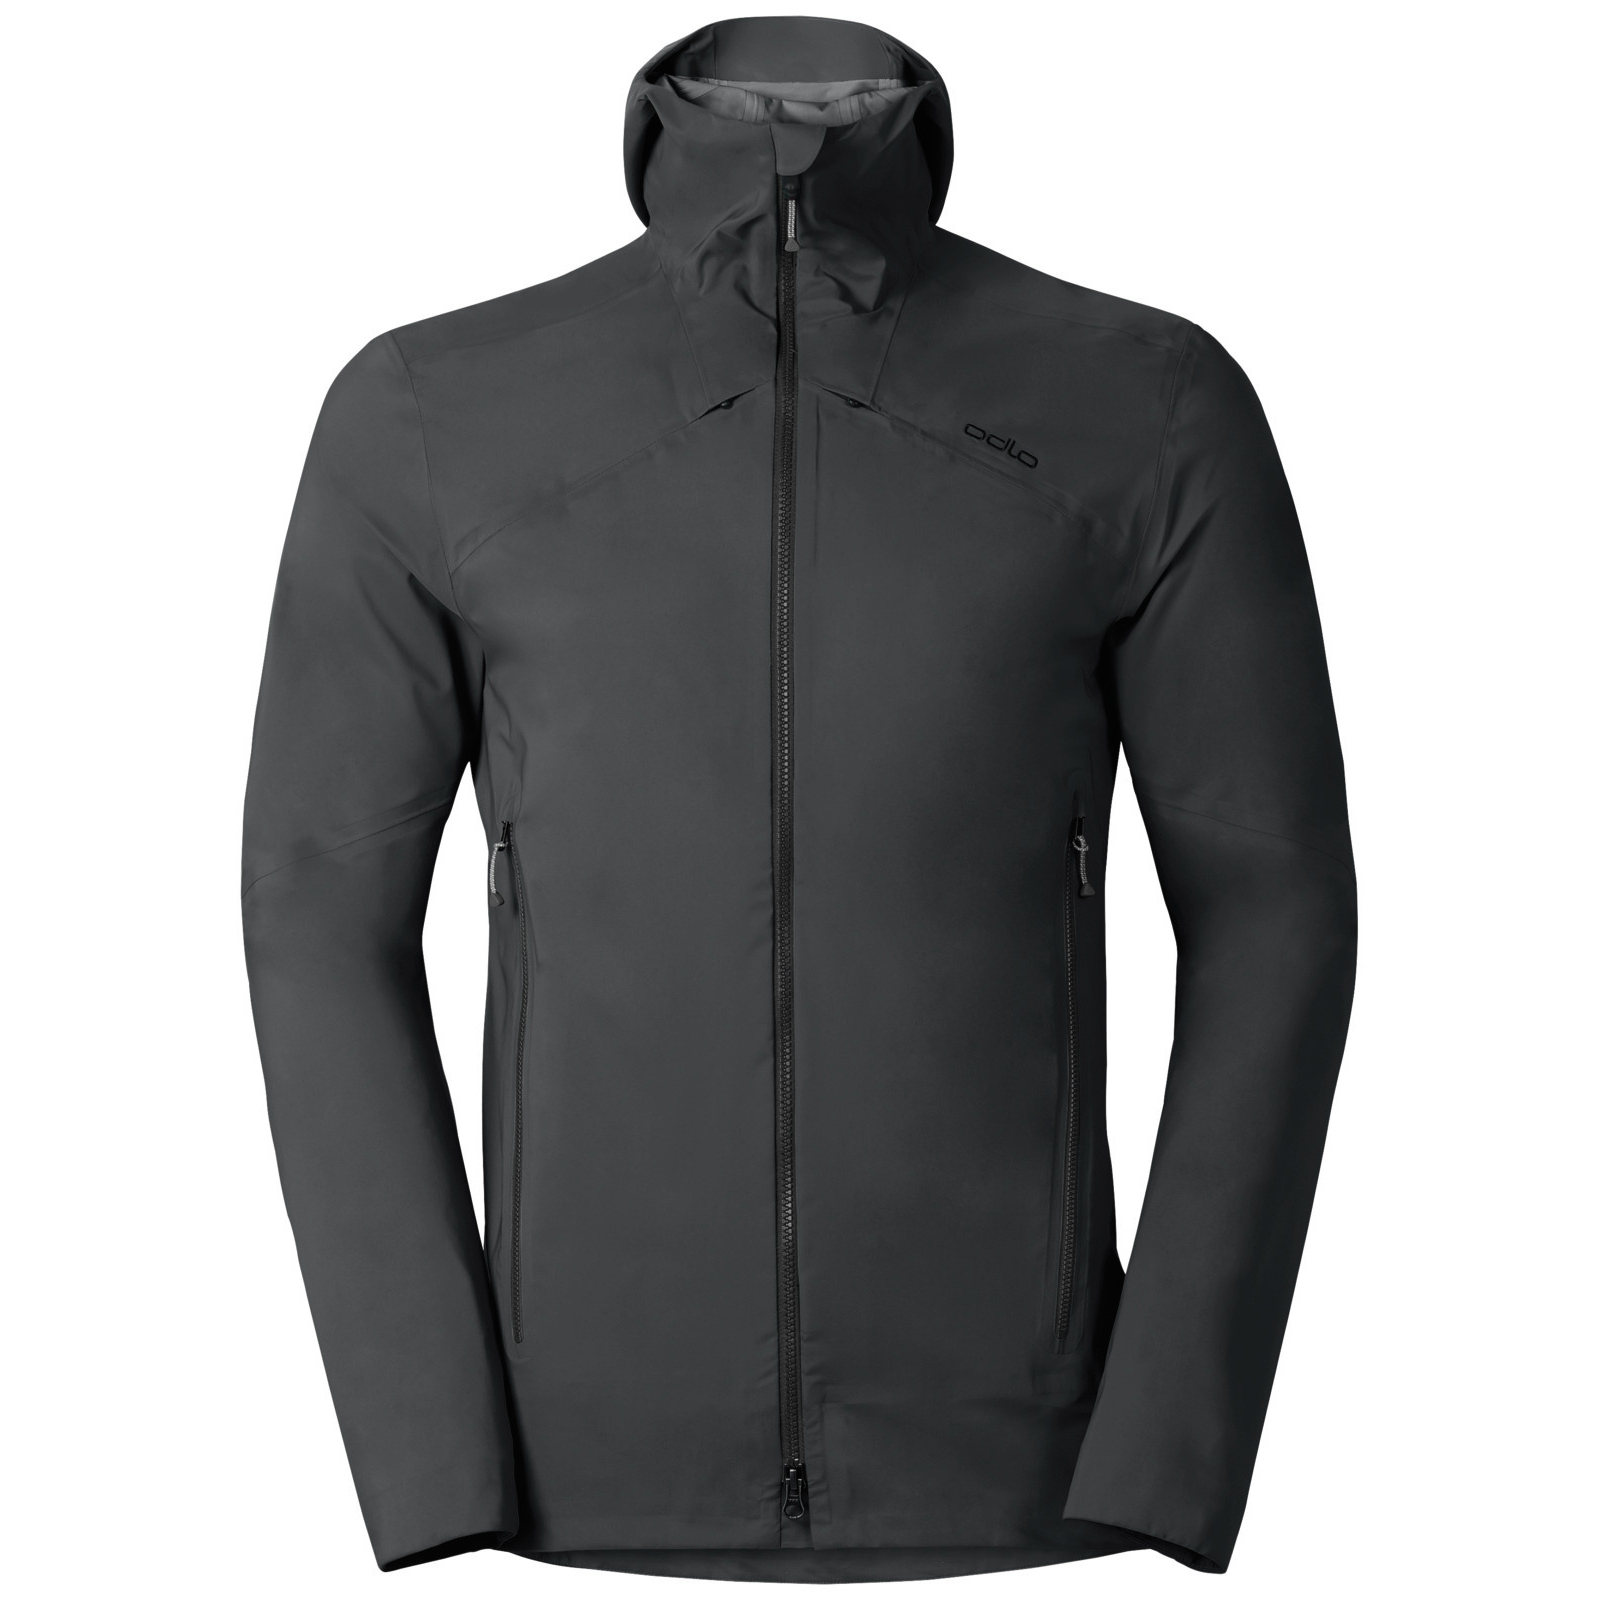 Odlo Indra Jacket | Graphite Grey